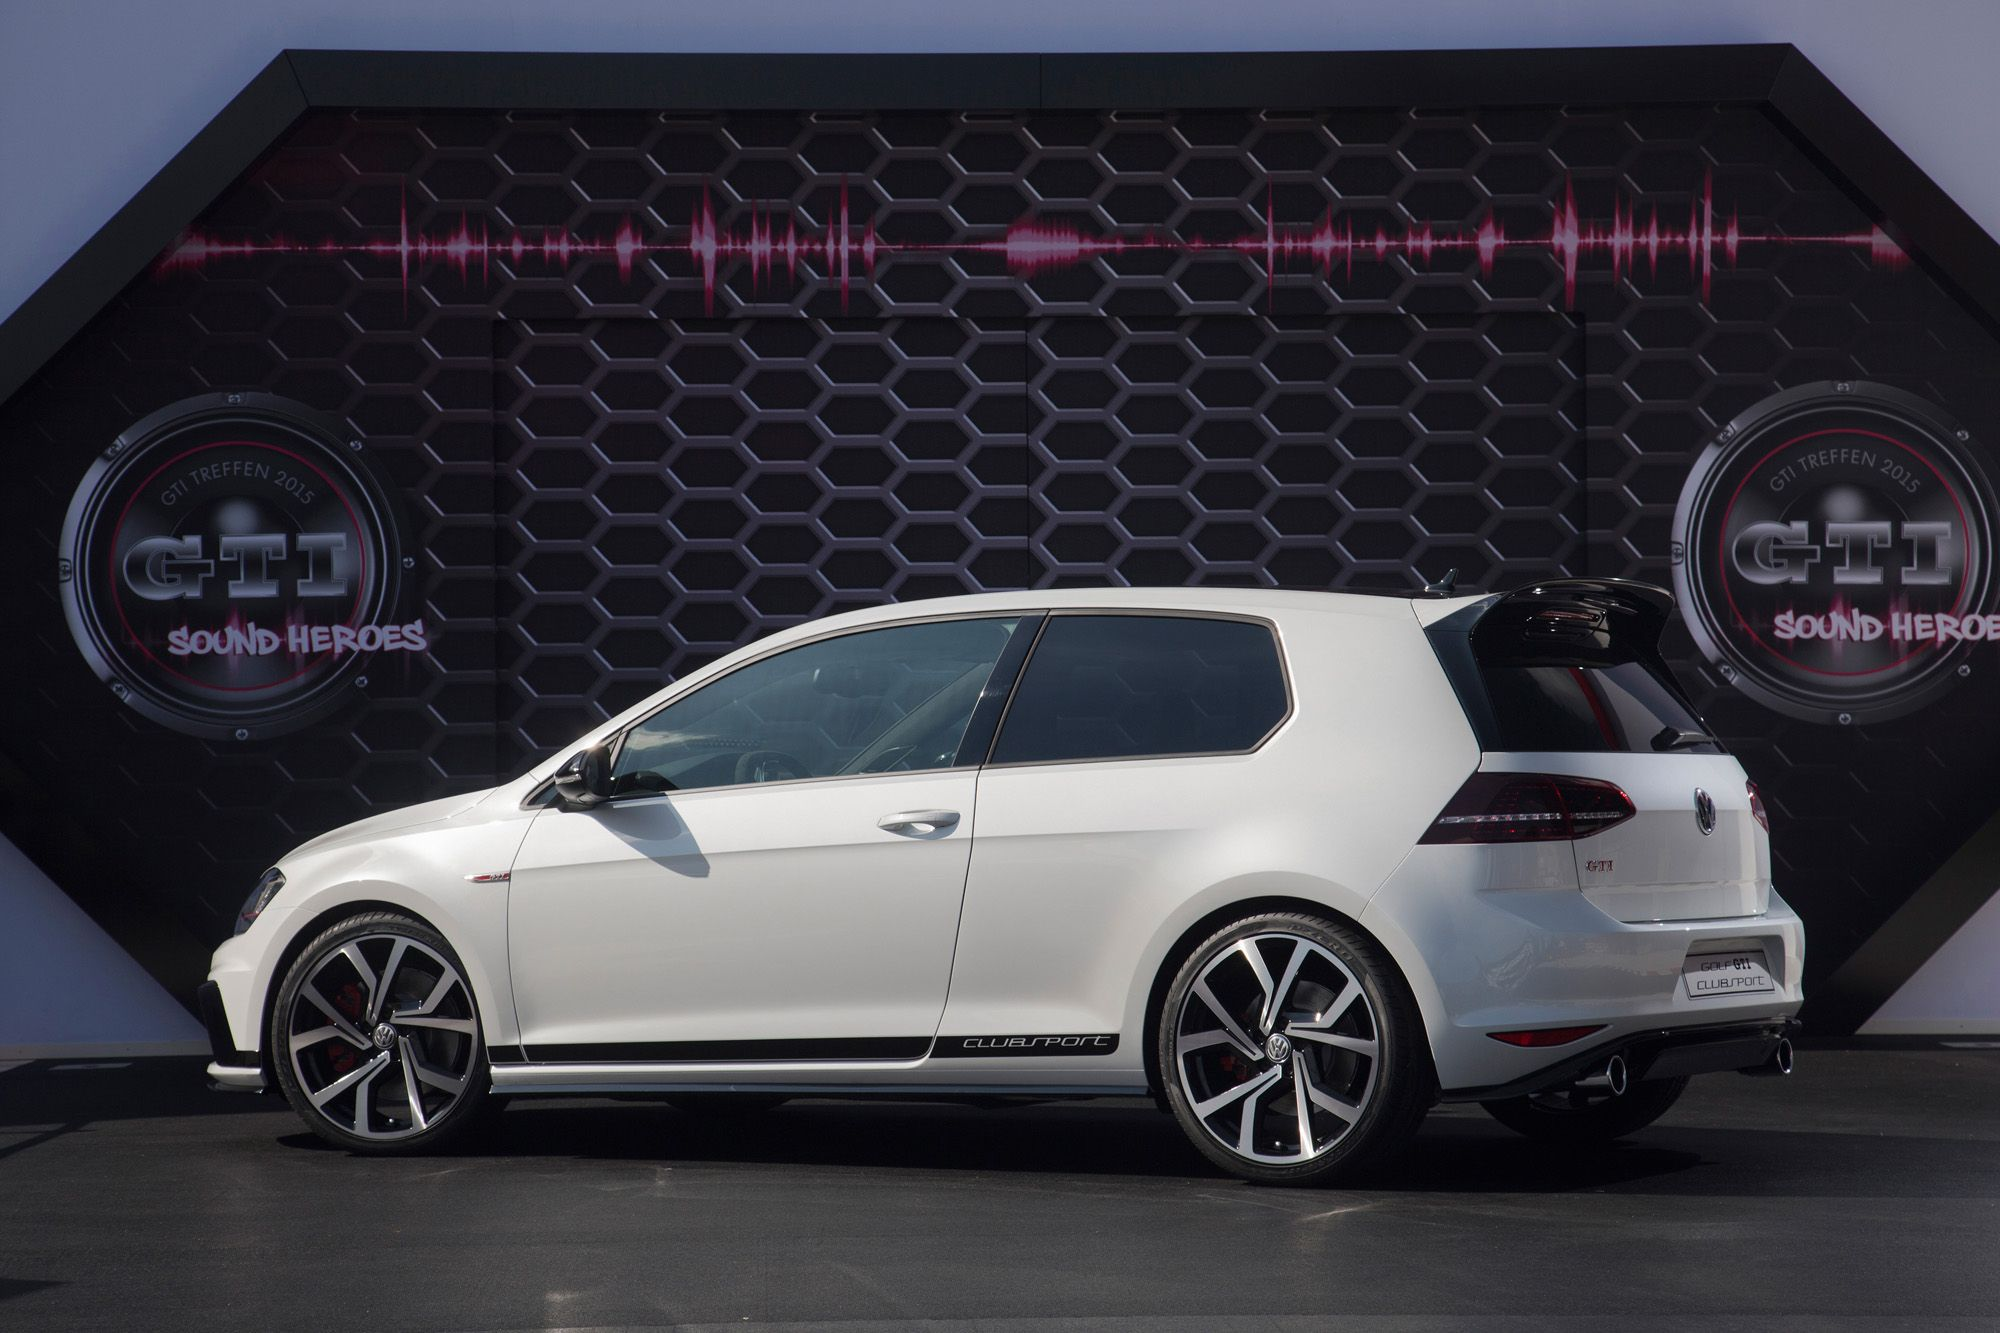 vw golf gti clubsport mit 265 ps sehnt sich nach. Black Bedroom Furniture Sets. Home Design Ideas